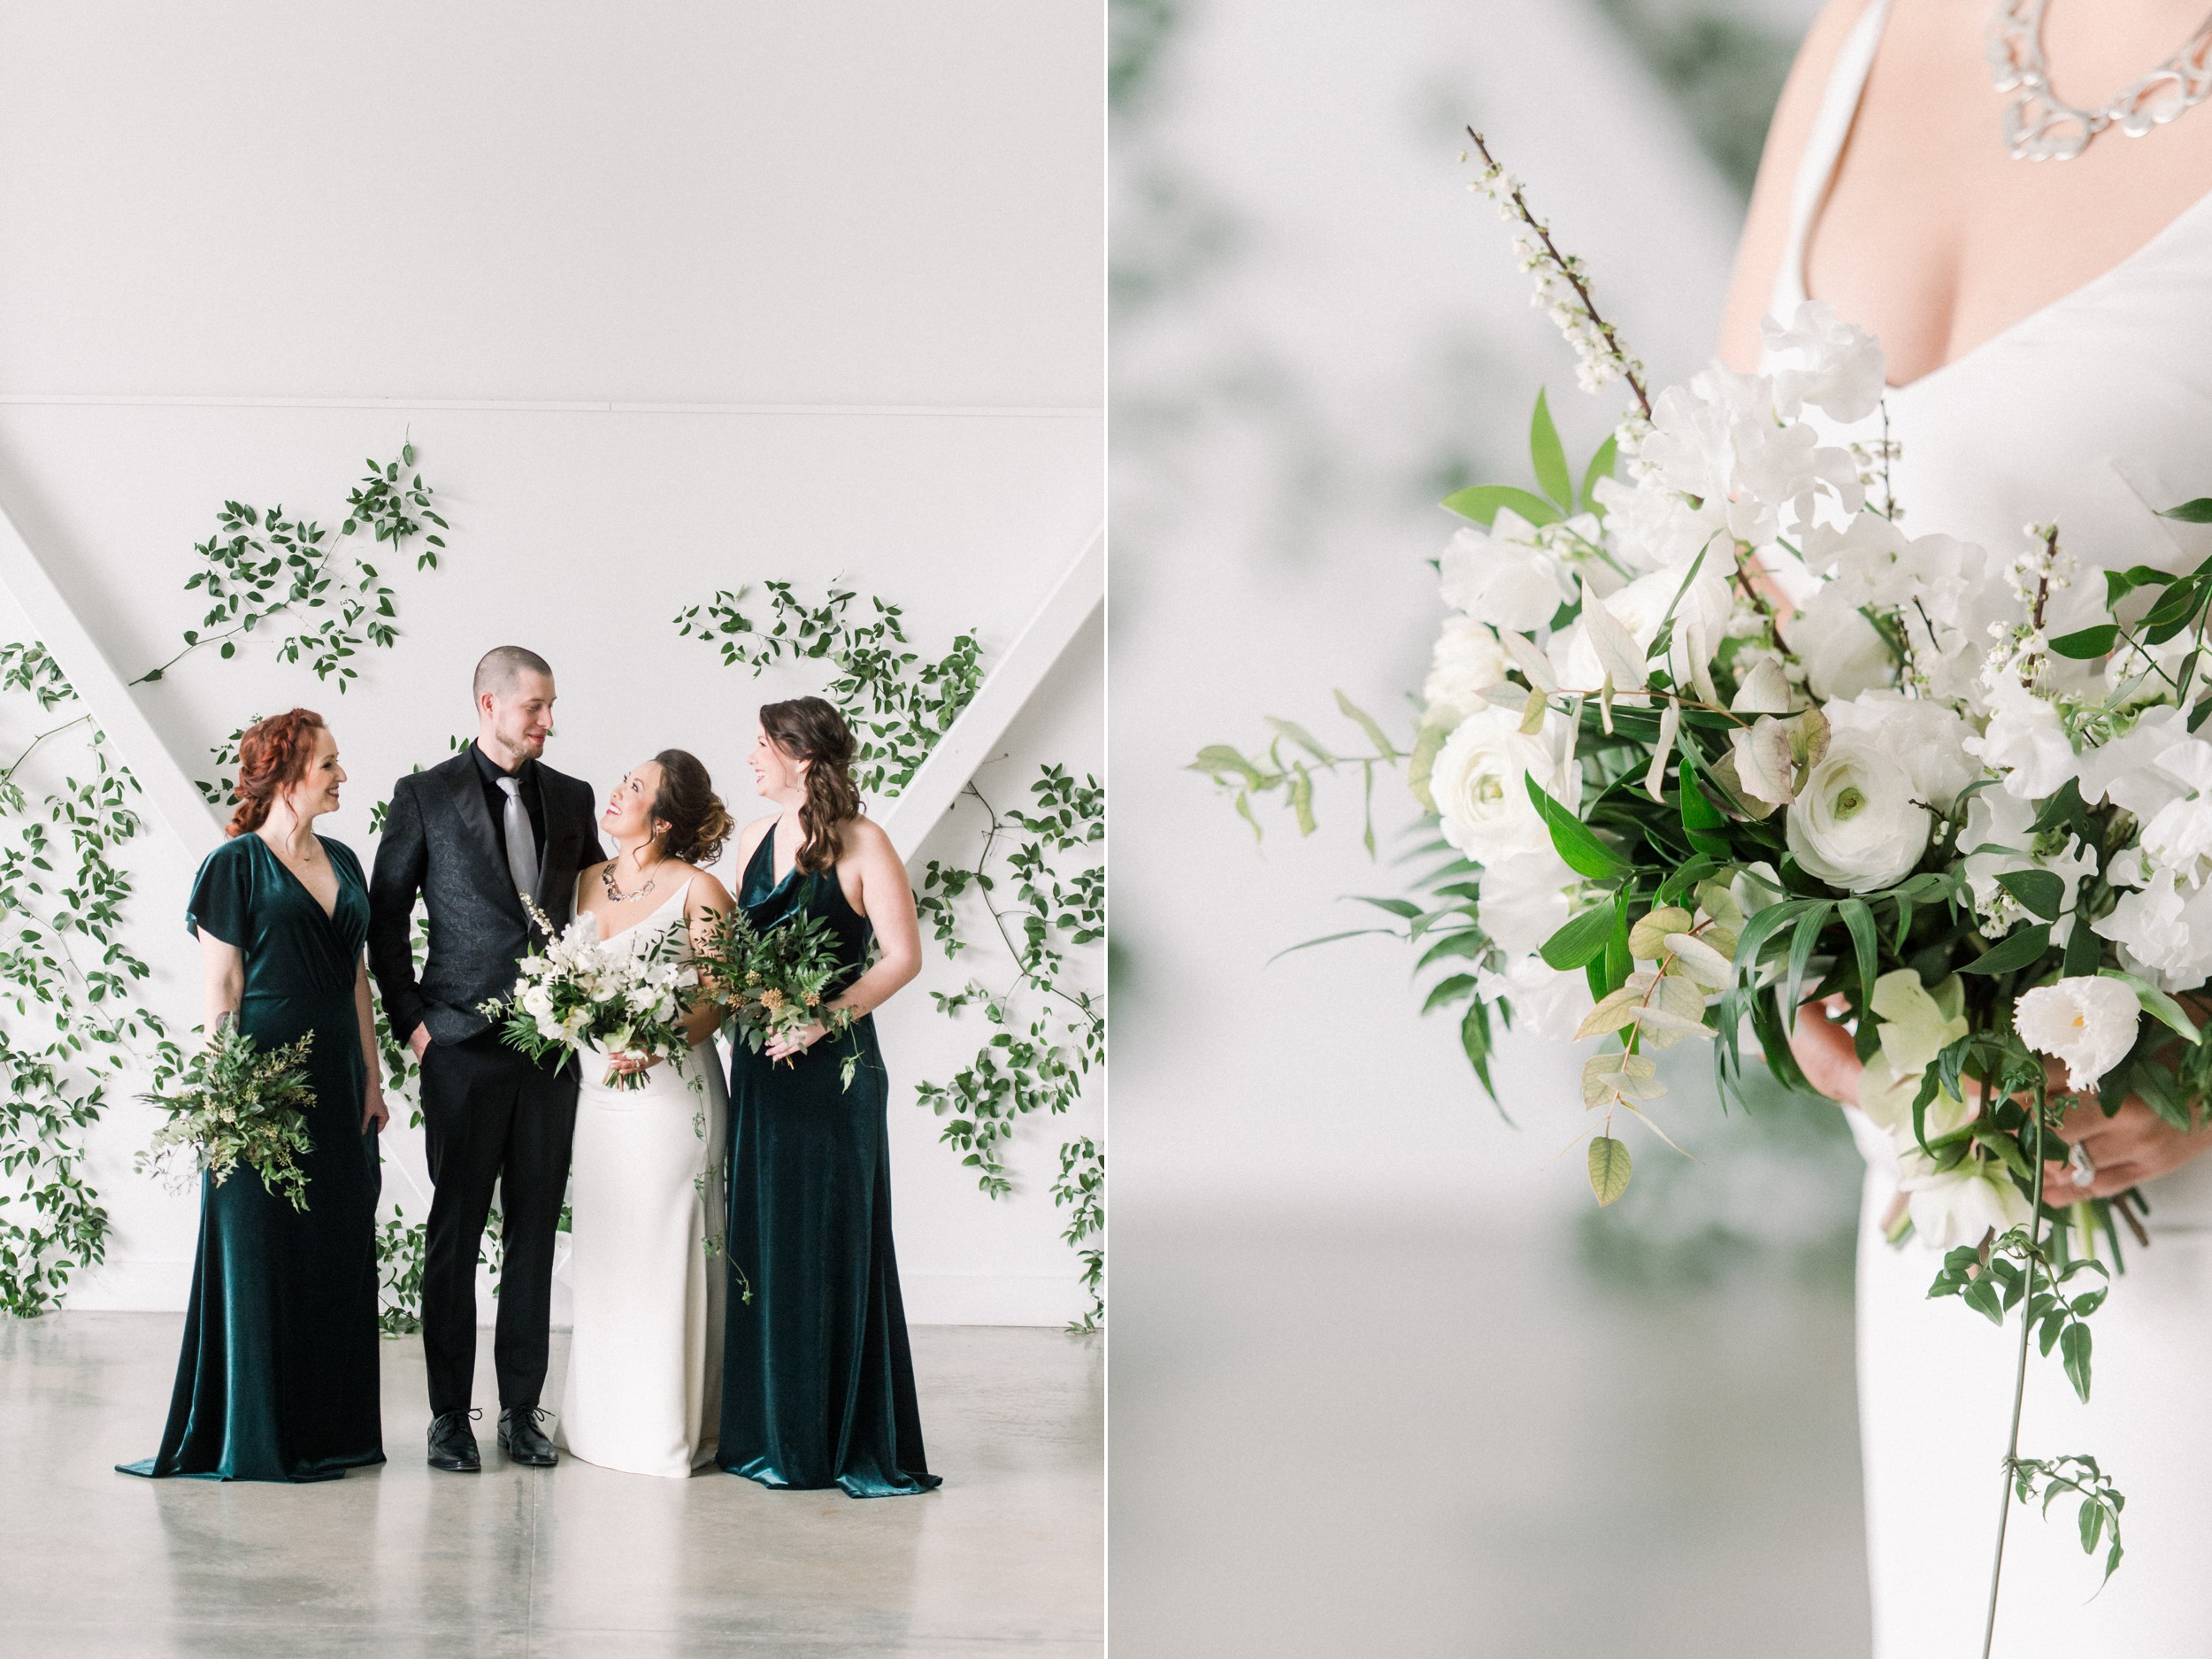 Jenny Yoo Bridesmaids Dresses green velvet | Bride Jann Marie Bridal | Groom tux Hive & Colony | Bridal Party Photos | Artists for humanity wedding | Boston wedding | green botanical wedding